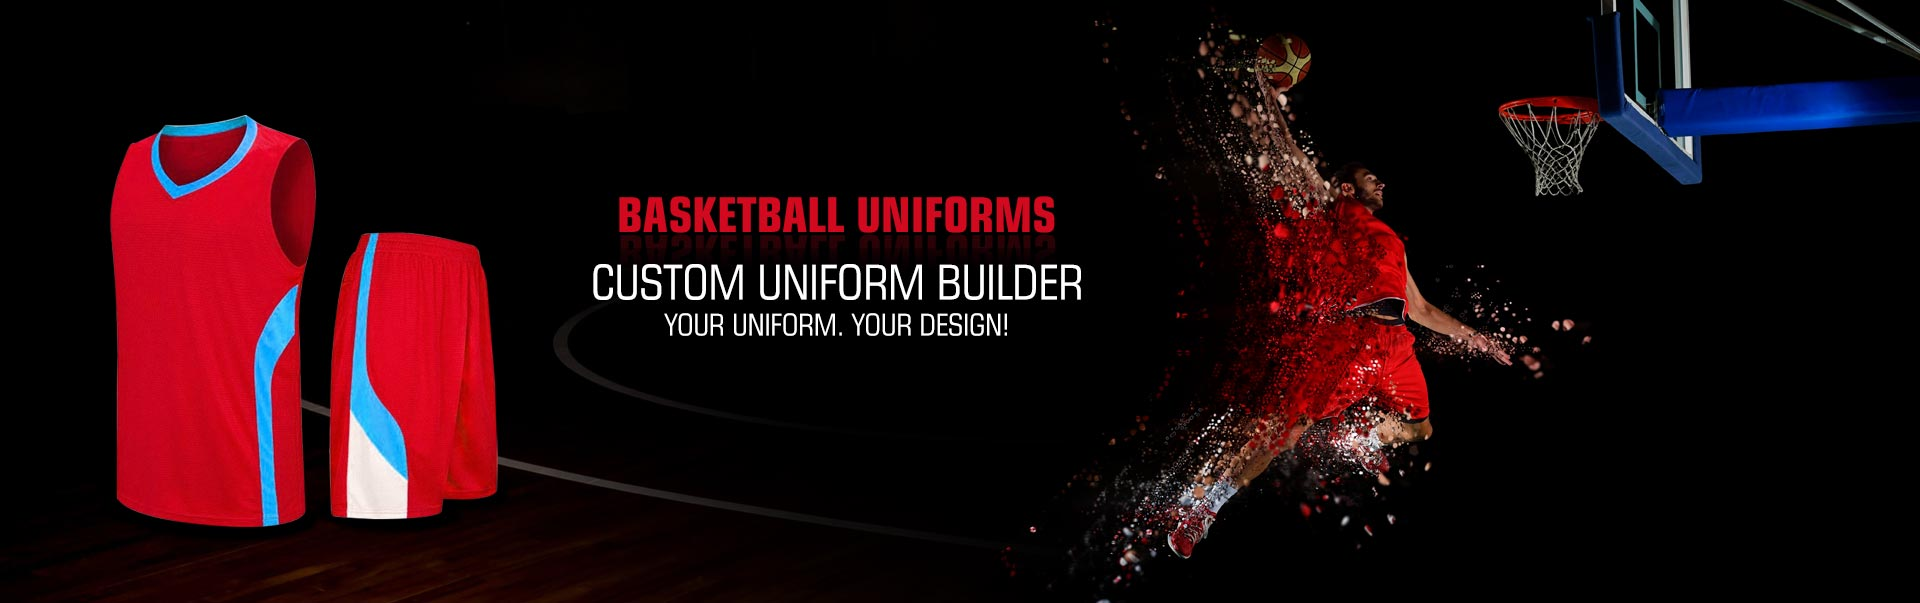 Basketball Uniforms Wholesaler, Suppliers in Dayton